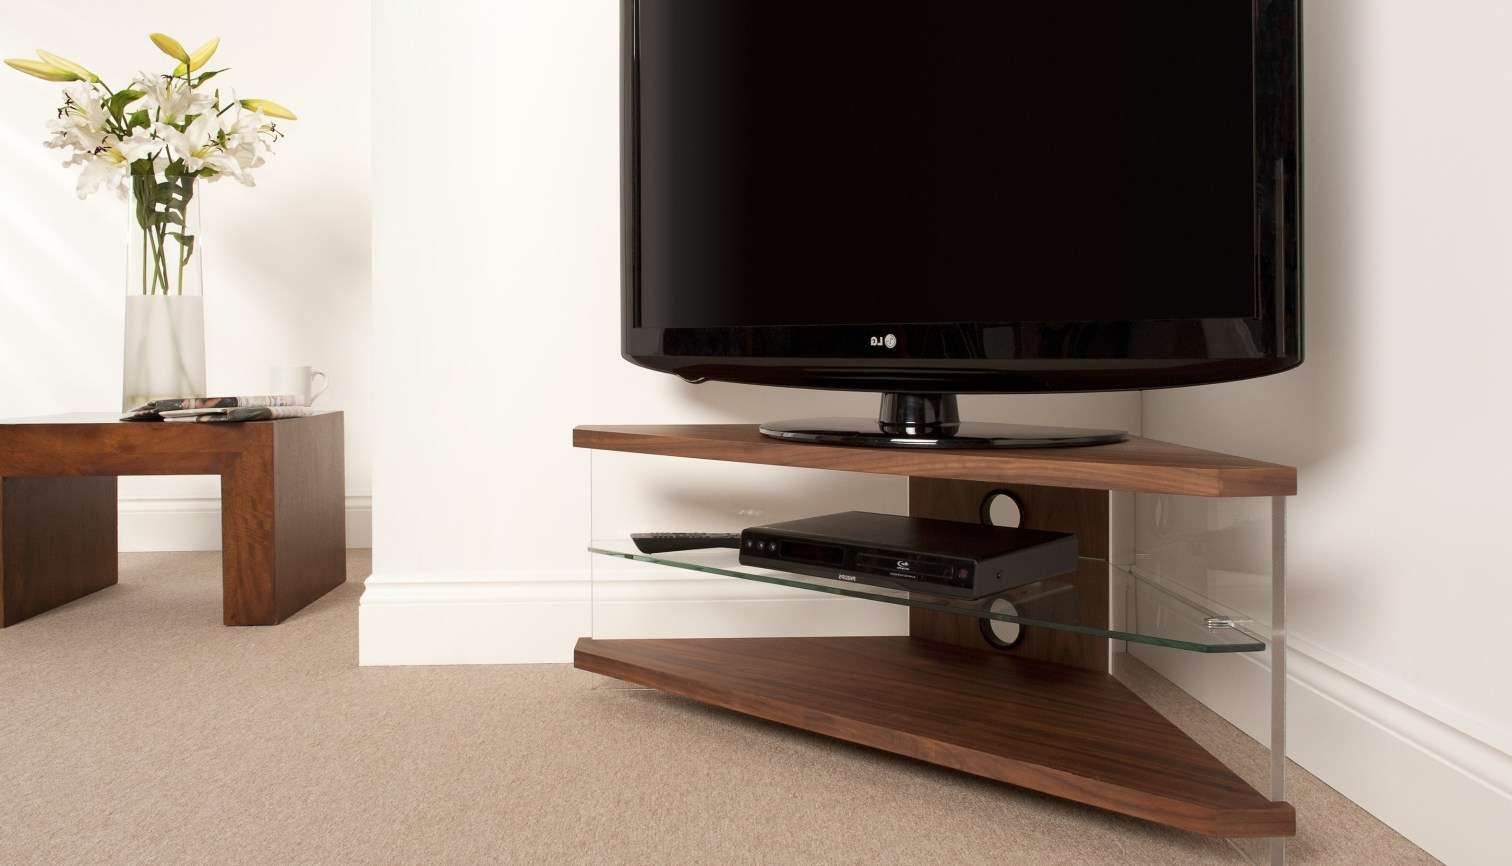 Tv : Enjoy Tv Shows Movies Adopting 12 Small White Tv Stand Ideas Throughout L Shaped Tv Stands (View 15 of 15)